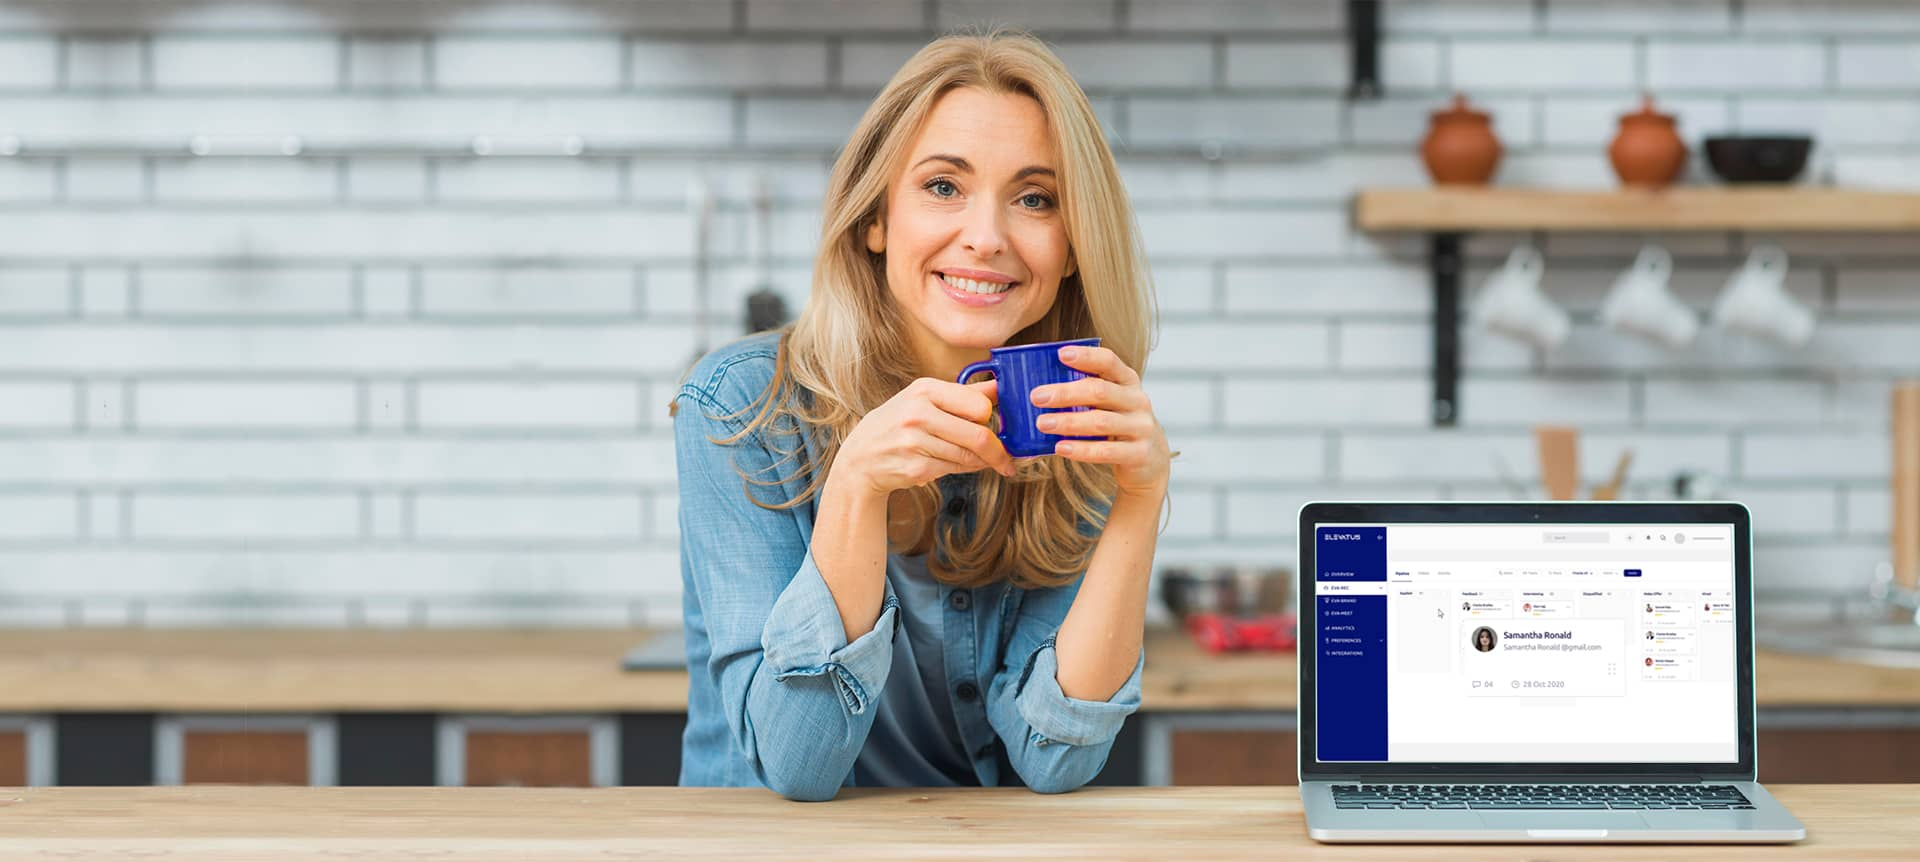 A recruiter who is drinking coffee and using the hiring solution, EVA-REC.